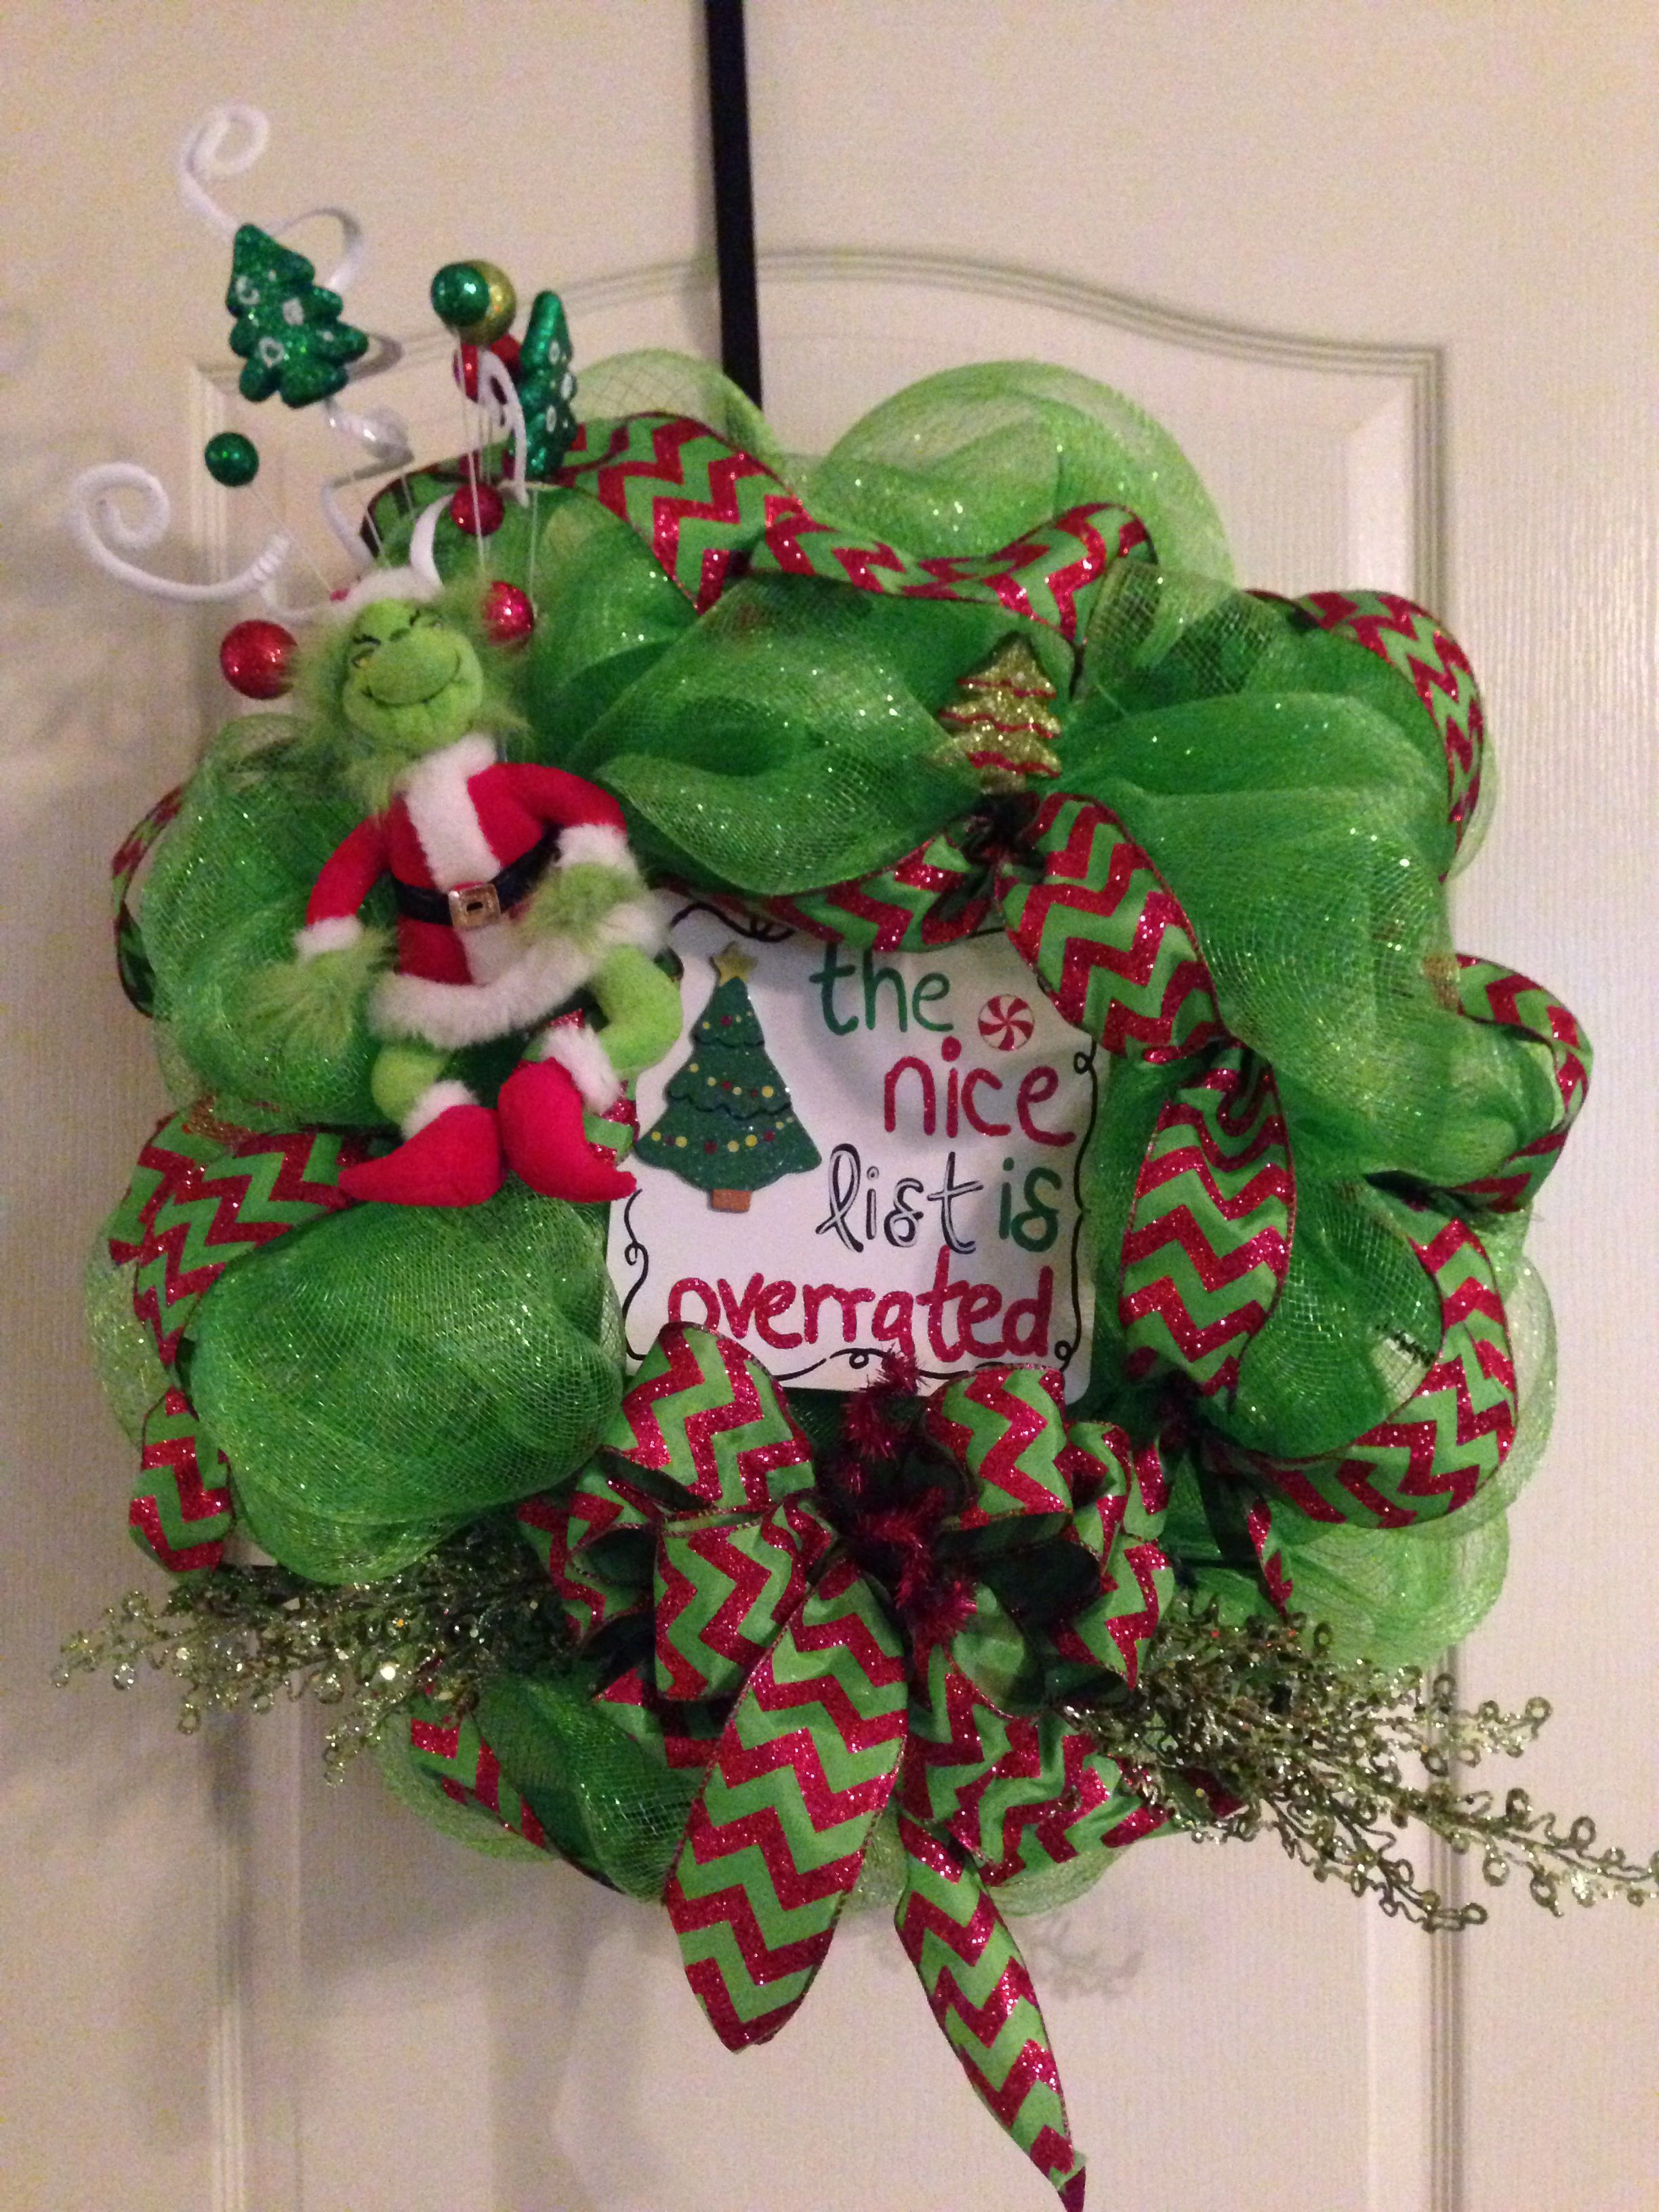 Christmas Decor Makeover: How The Grinch Stole